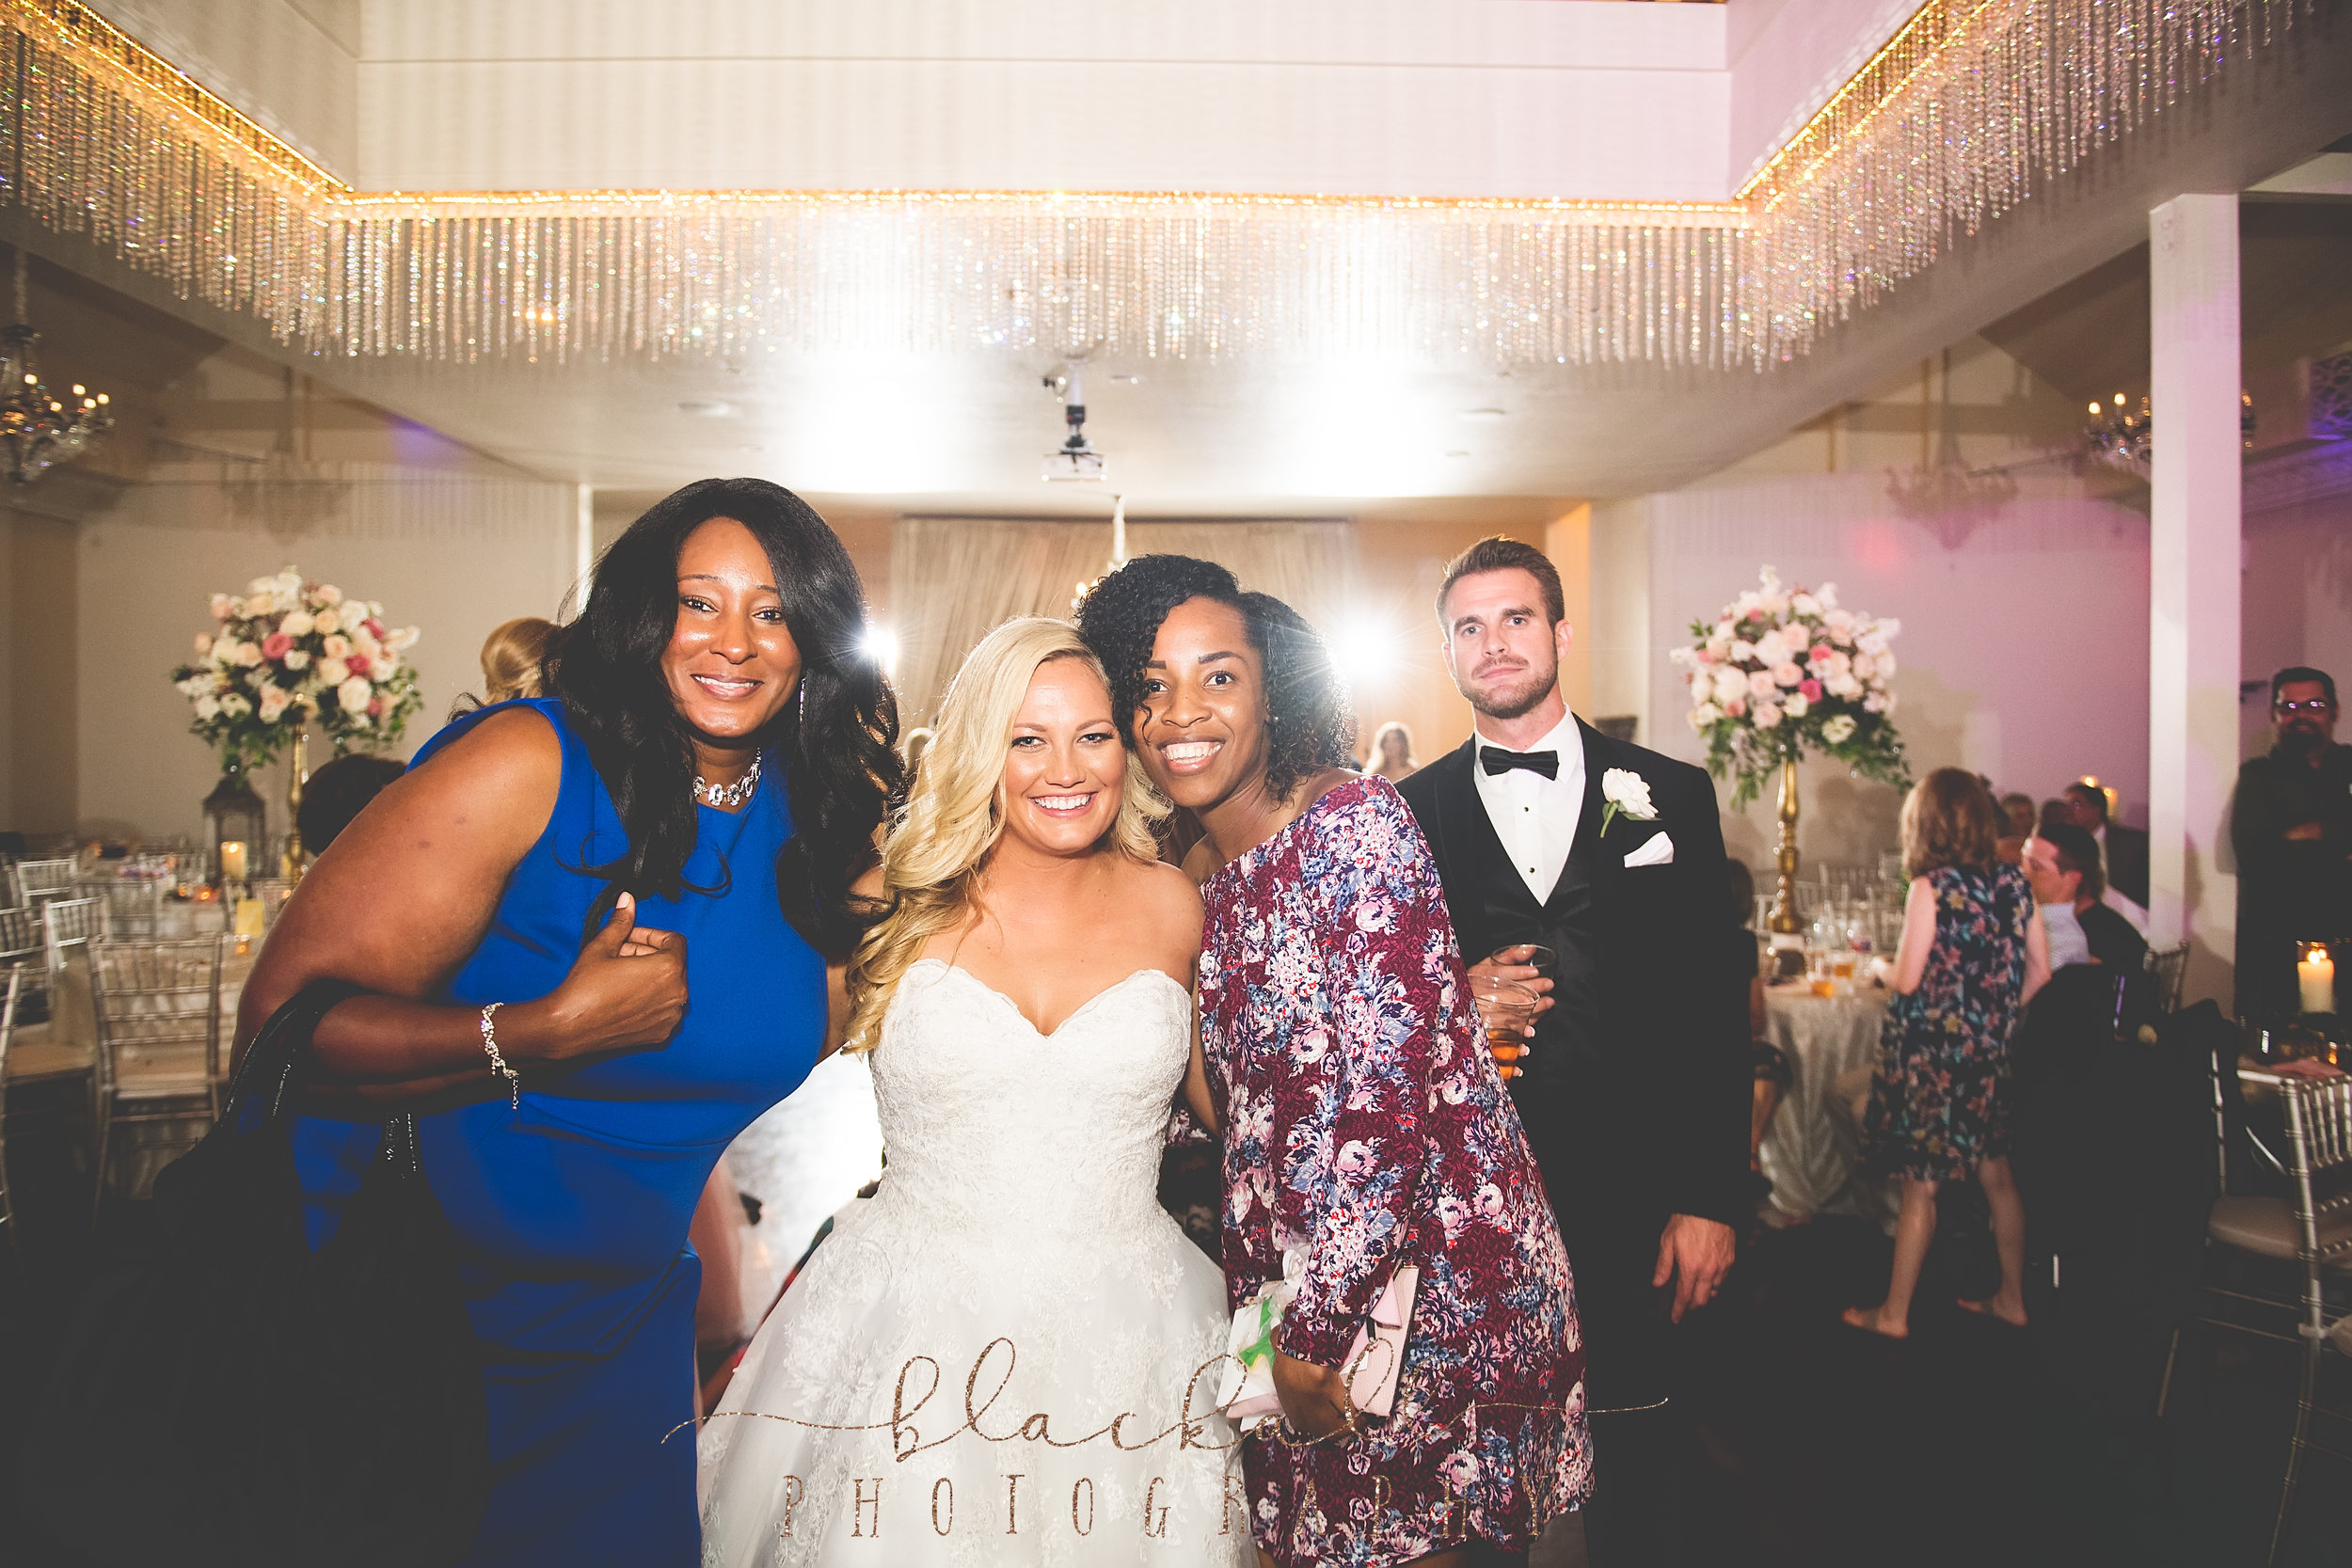 WEDDING_BlackallPhotography_54.JPG